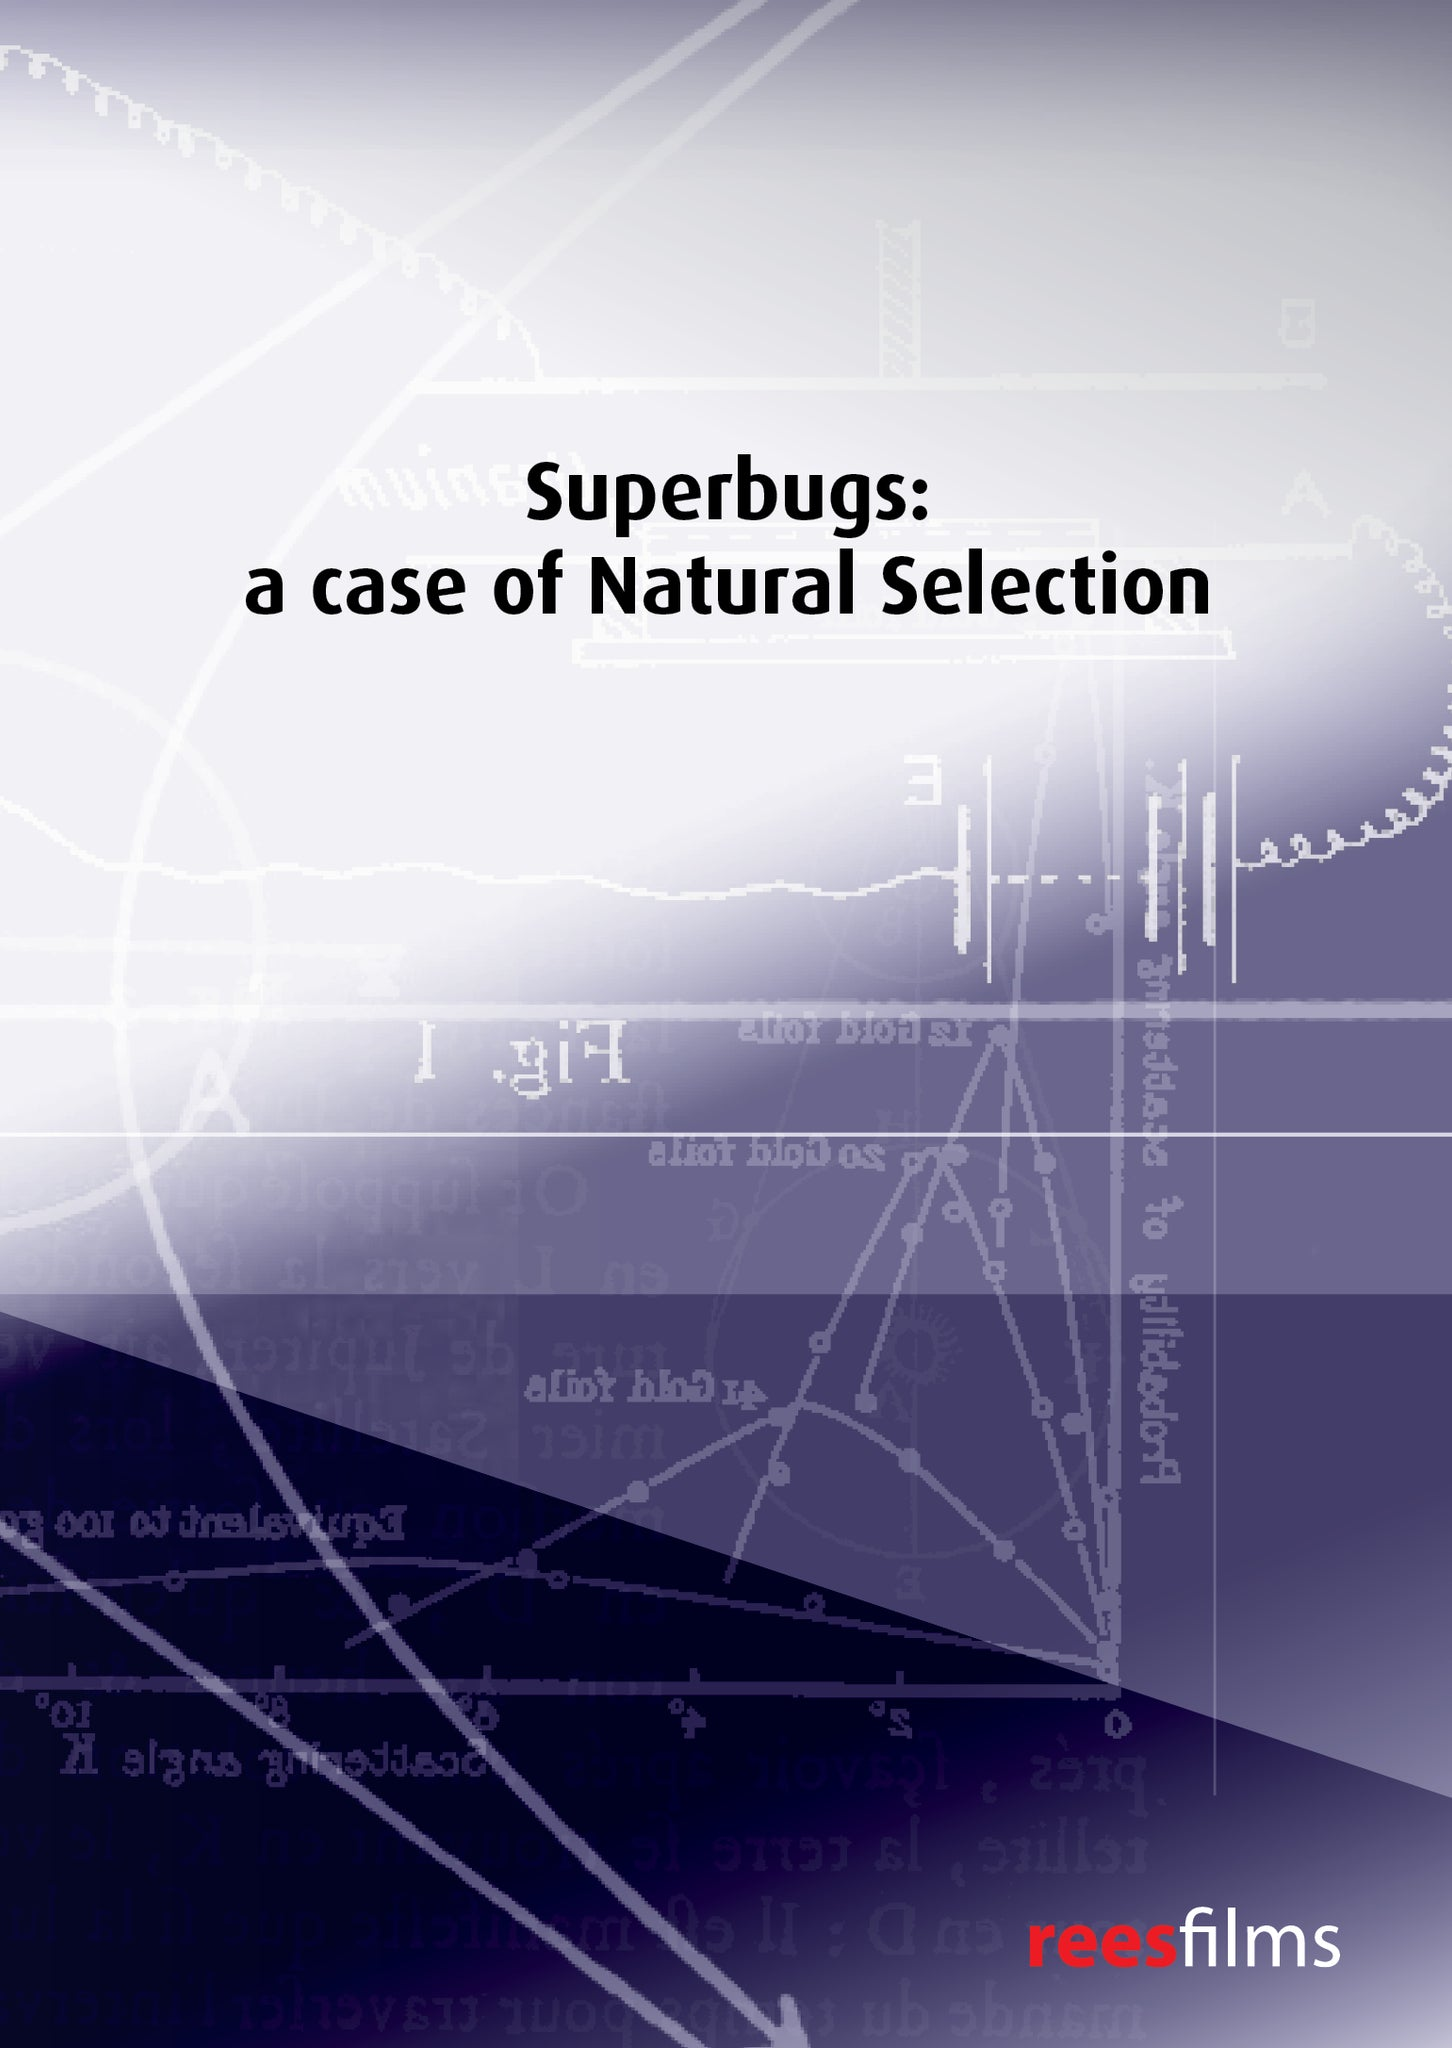 Superbugs: a case of natural selection